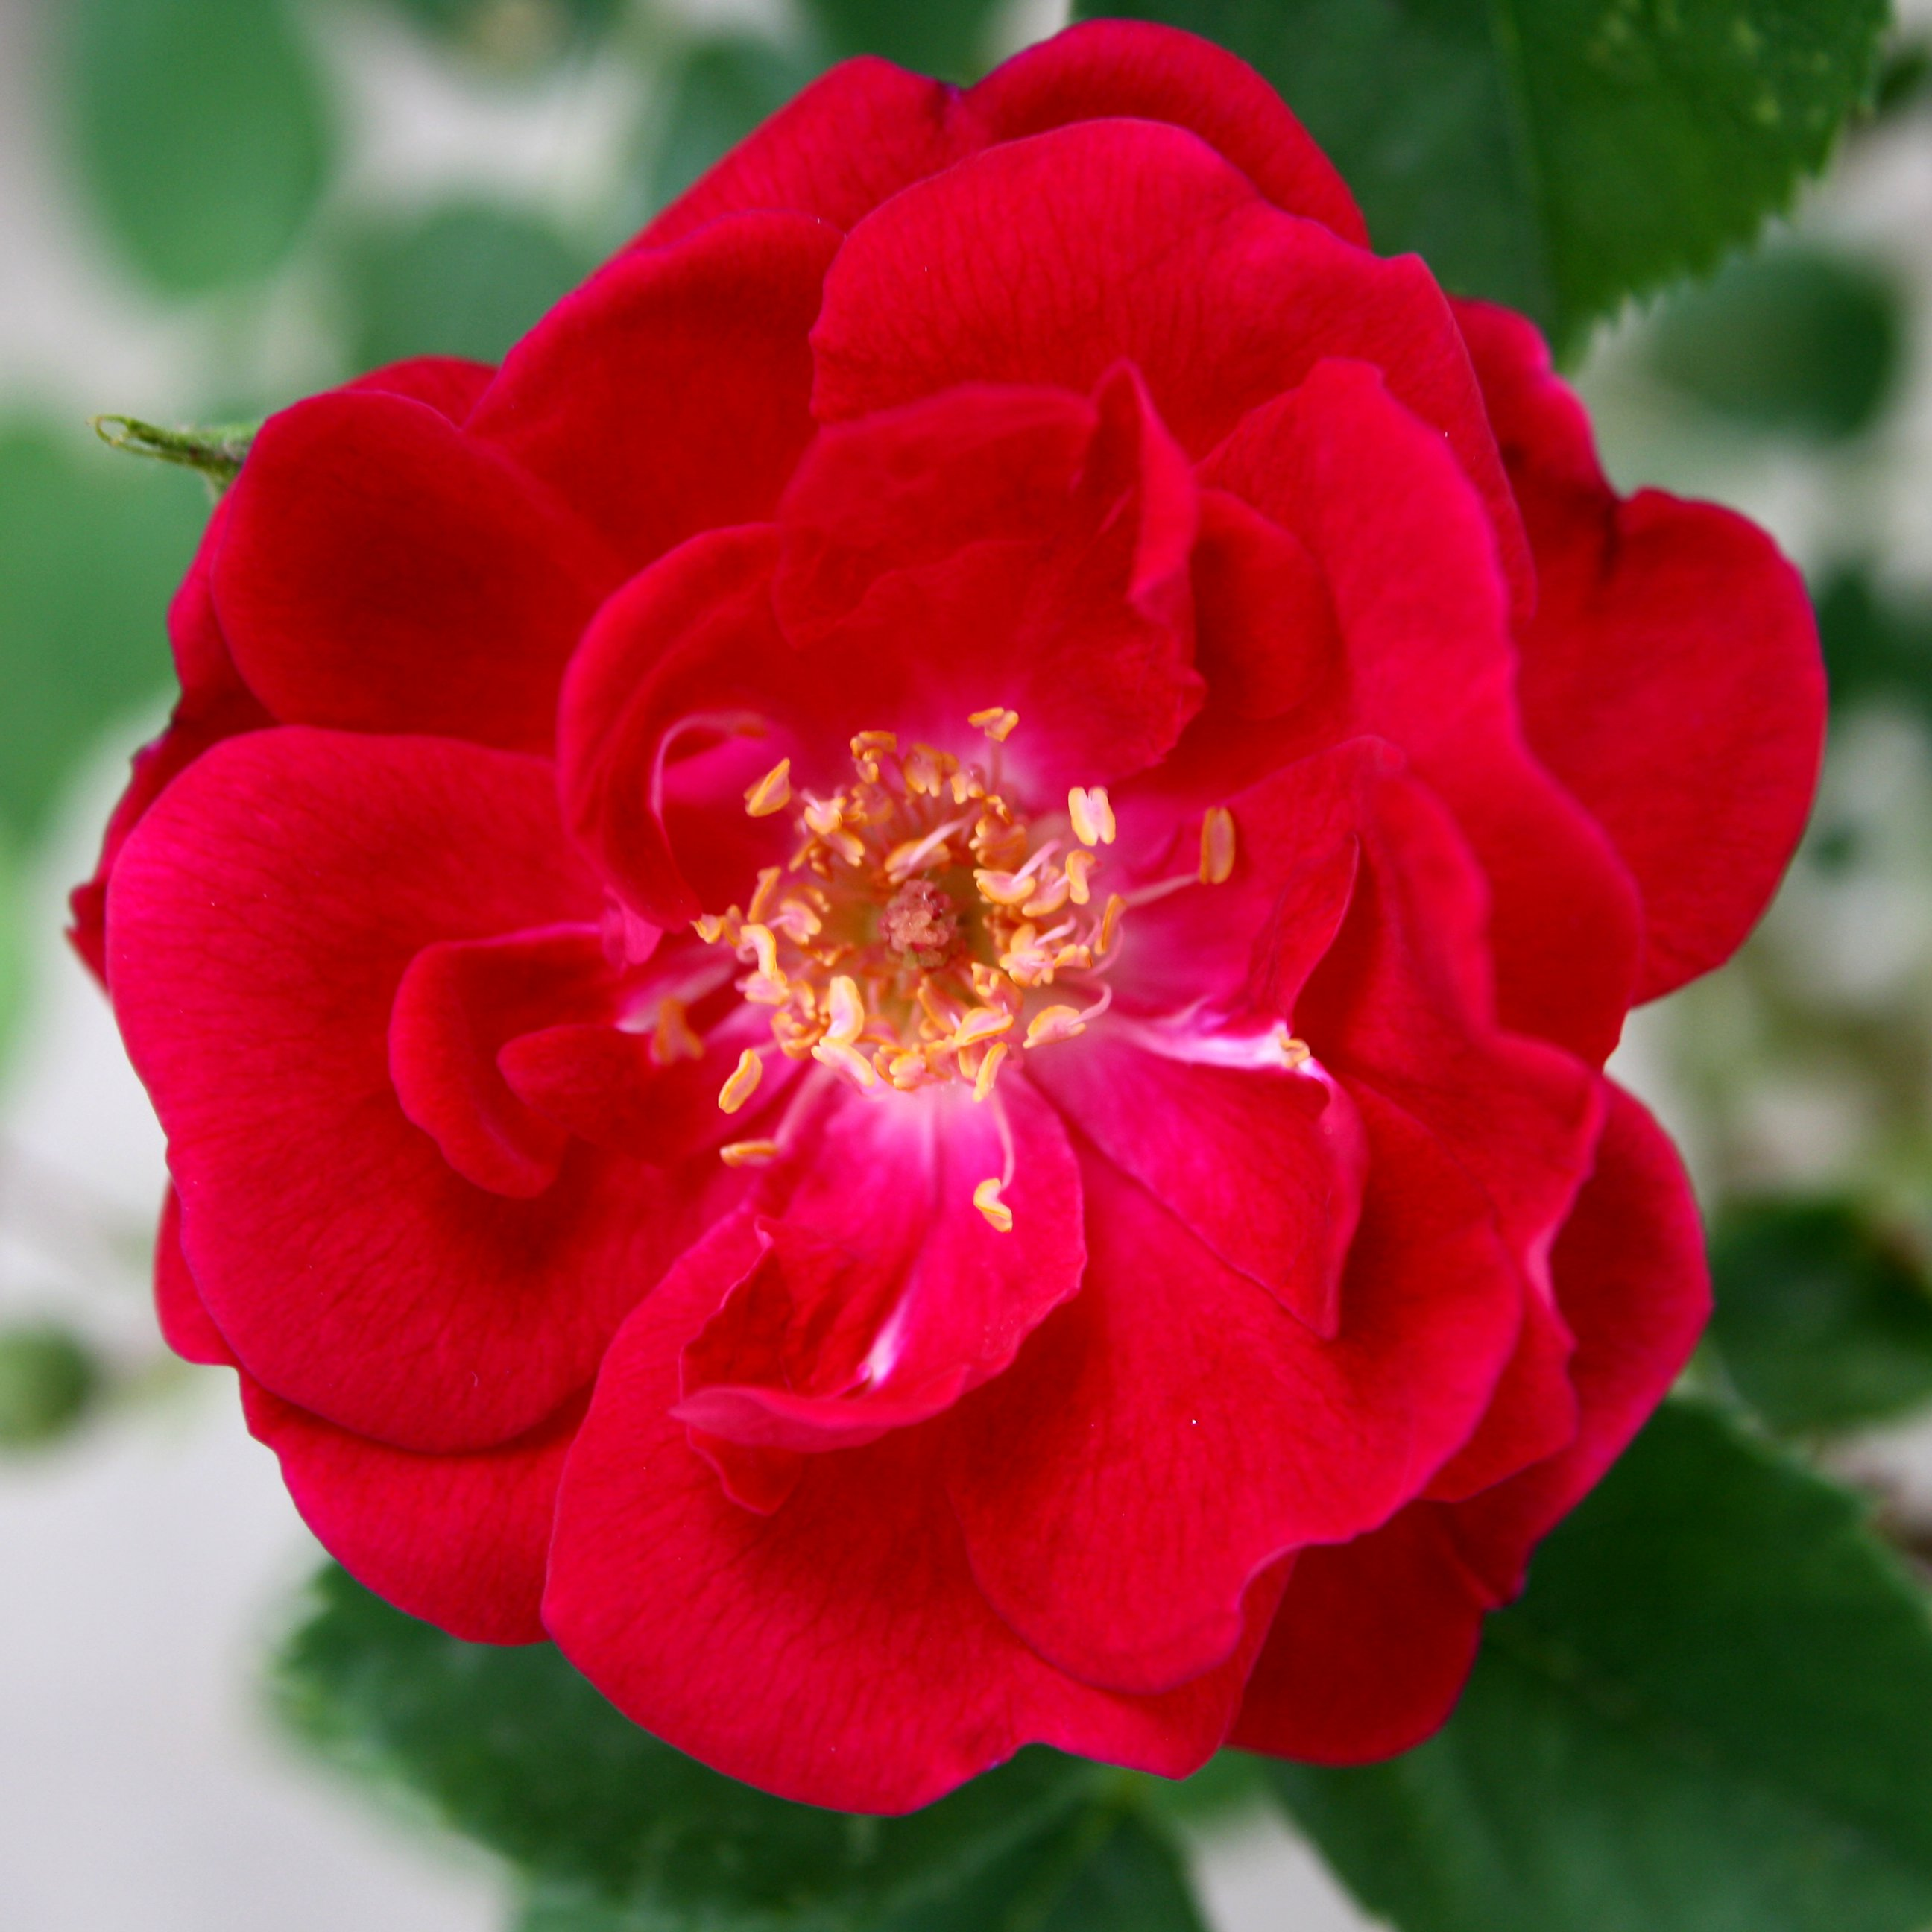 Wild Red Rose Picture Free Photograph Photos Public Domain